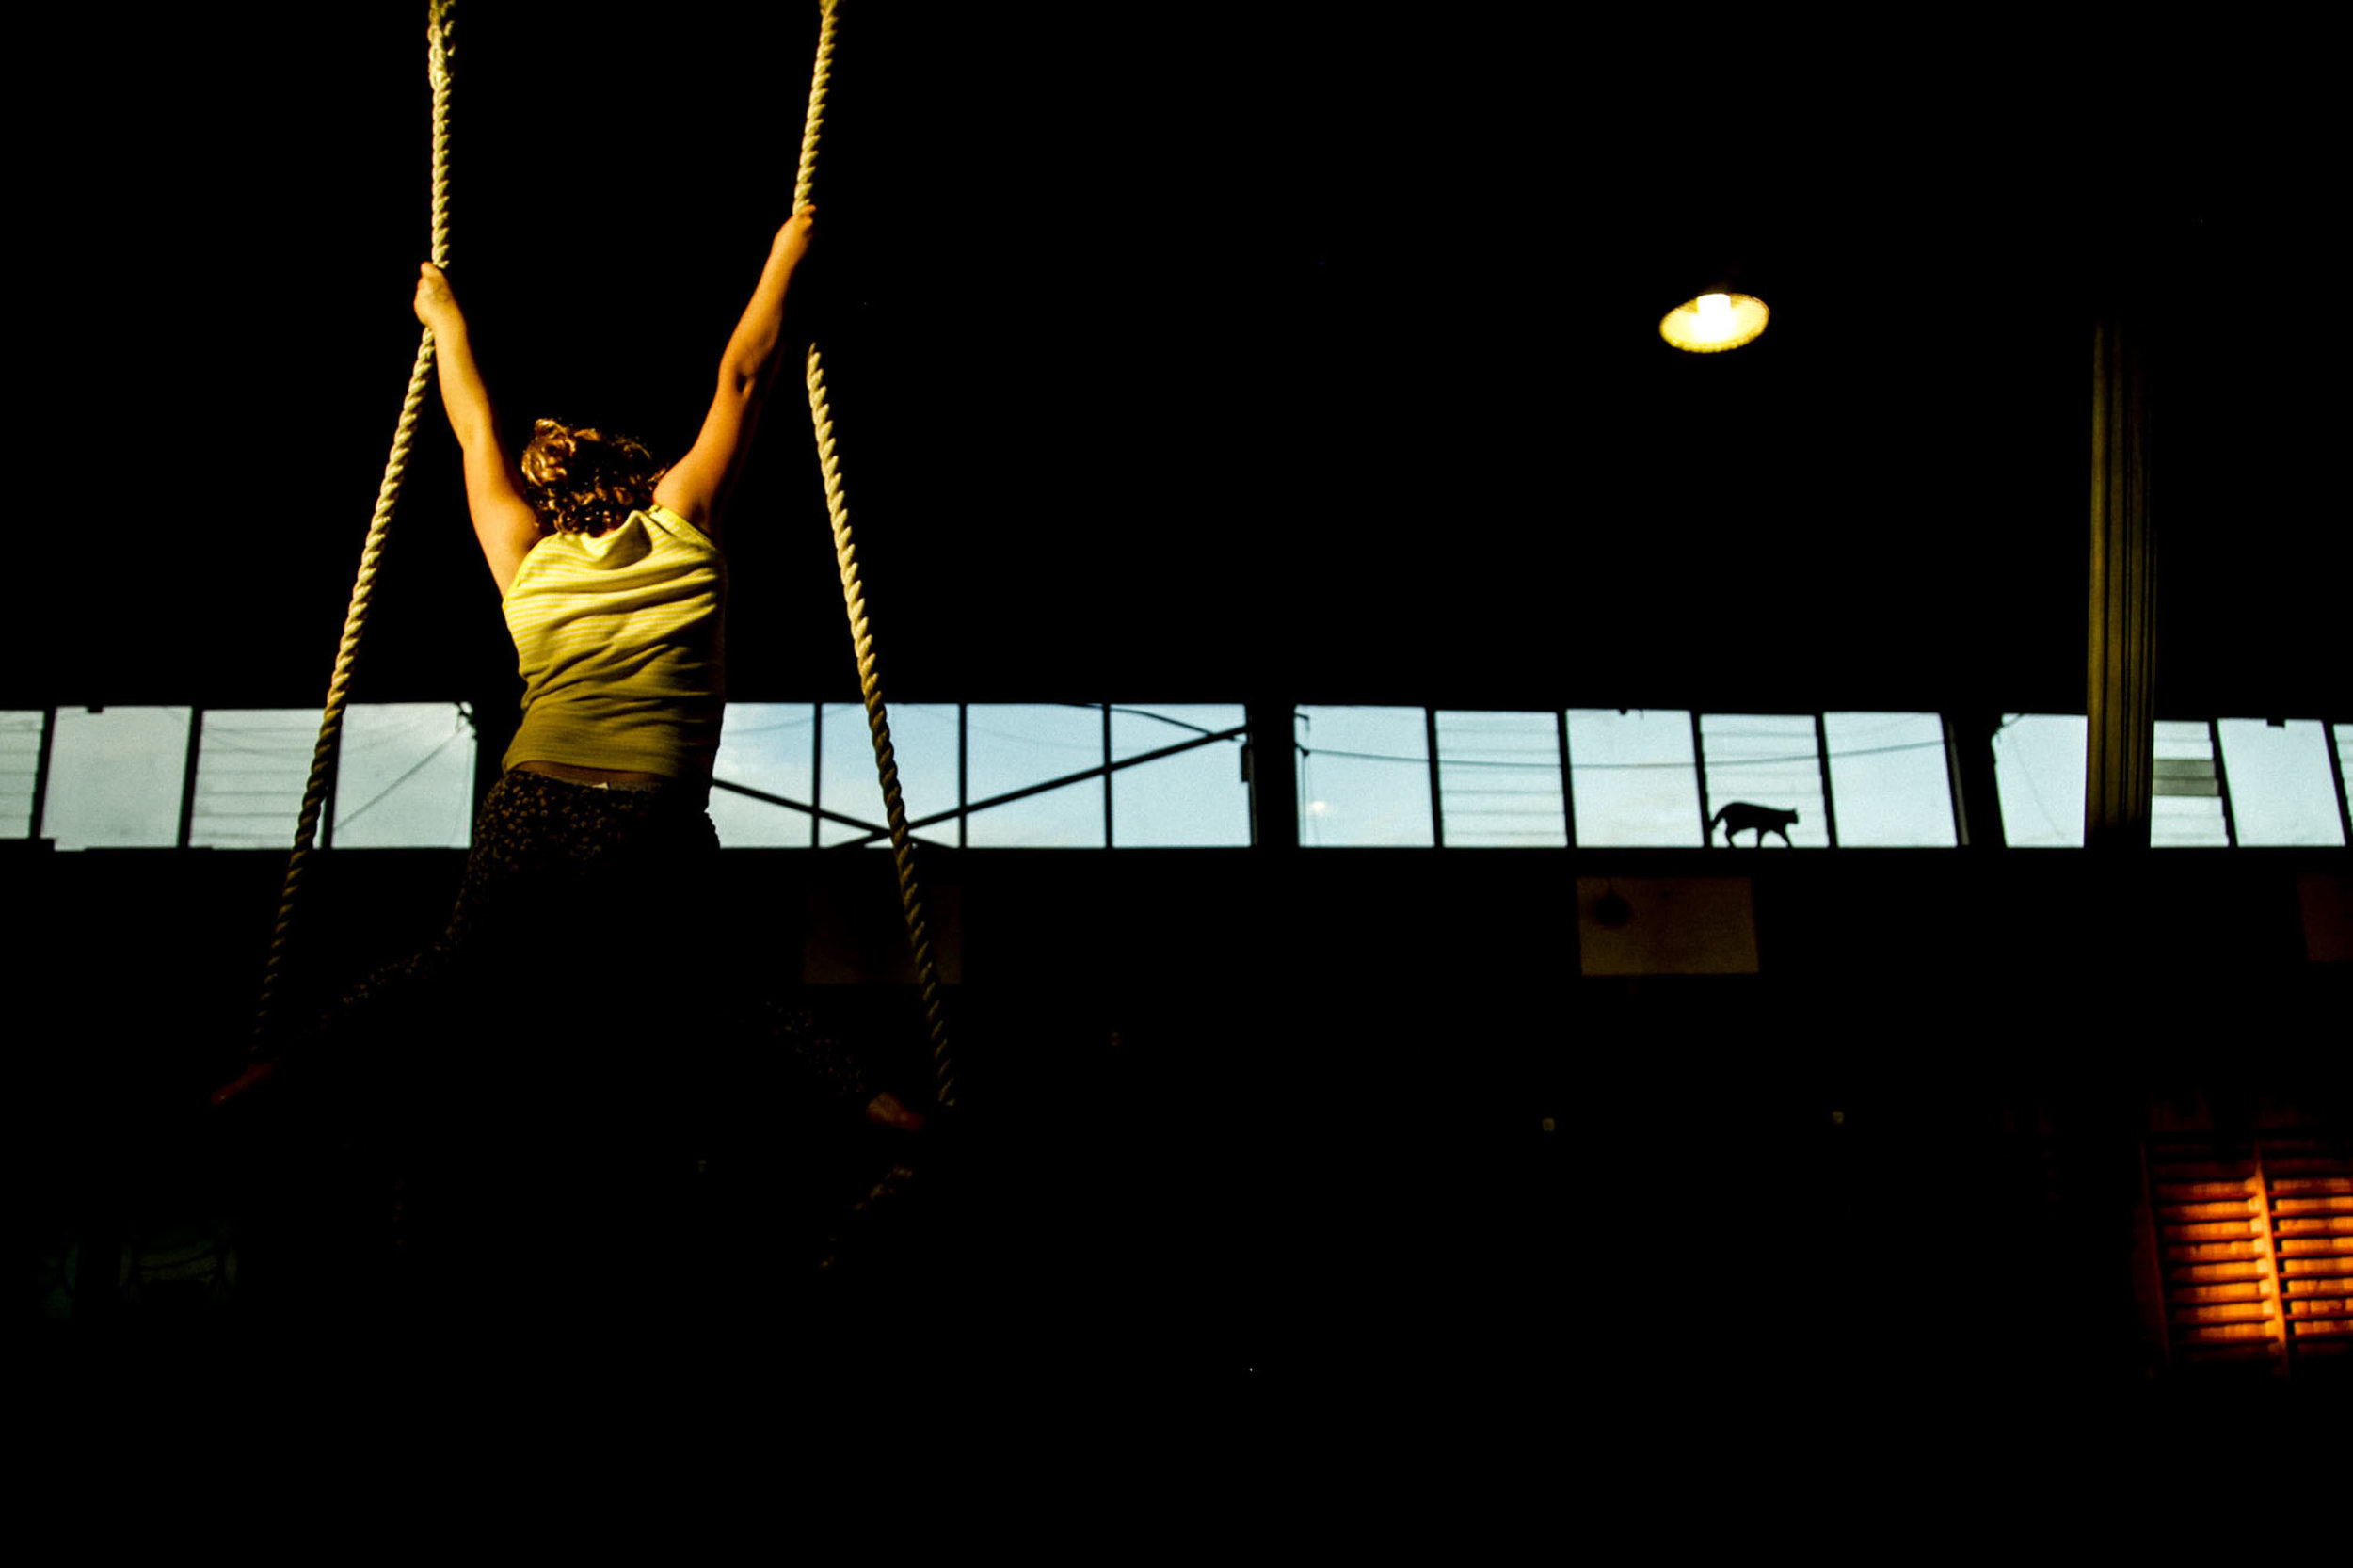 A student at the Christchurch Circus Centre hangs on a trapeze during class on May 10, 2016 in Christchurch, NZ.